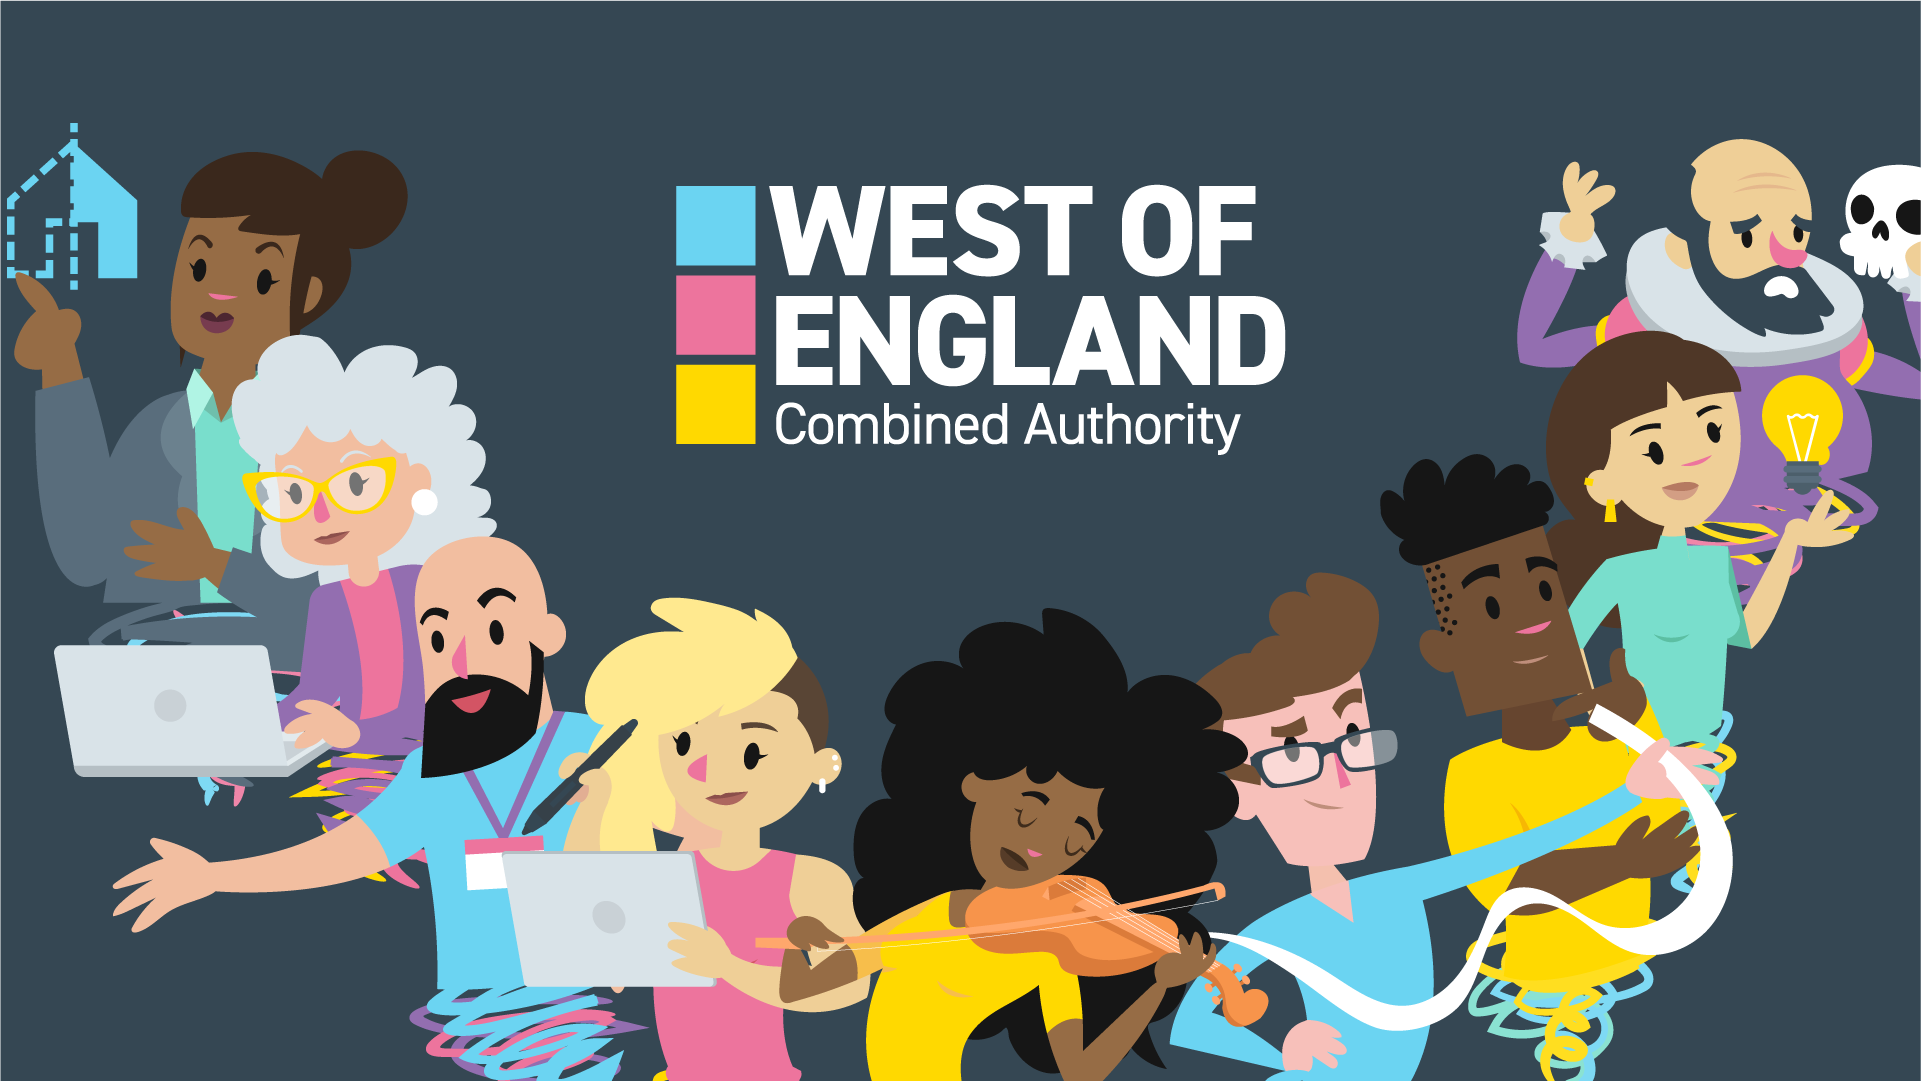 West of England Authority supports Creative industries